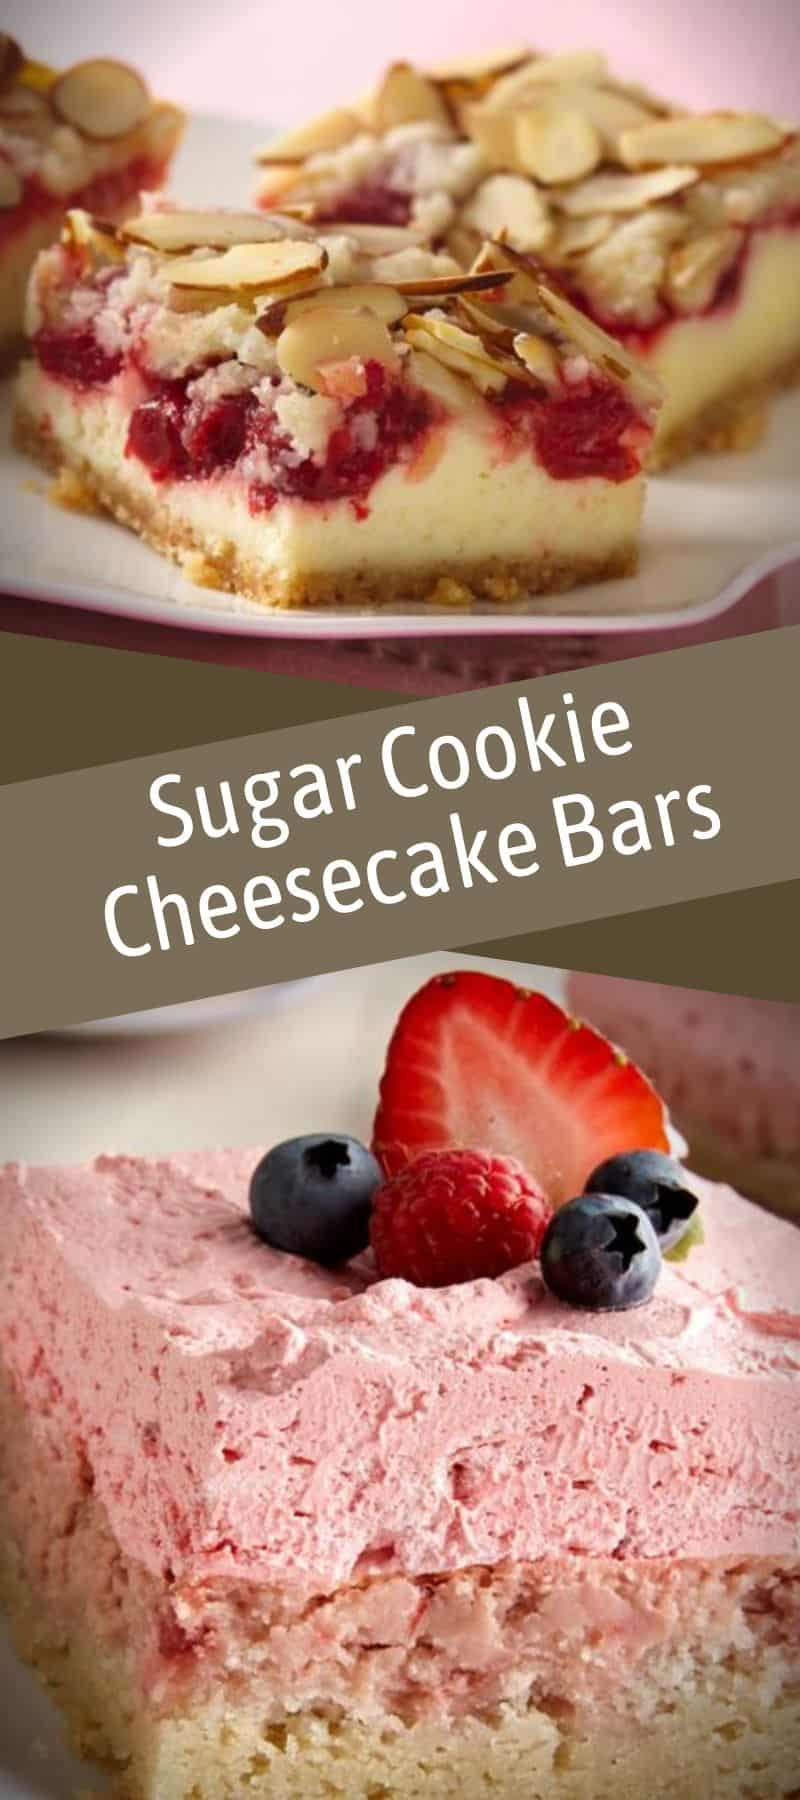 Sugar Cookie Cheesecake Bars Recipe 3